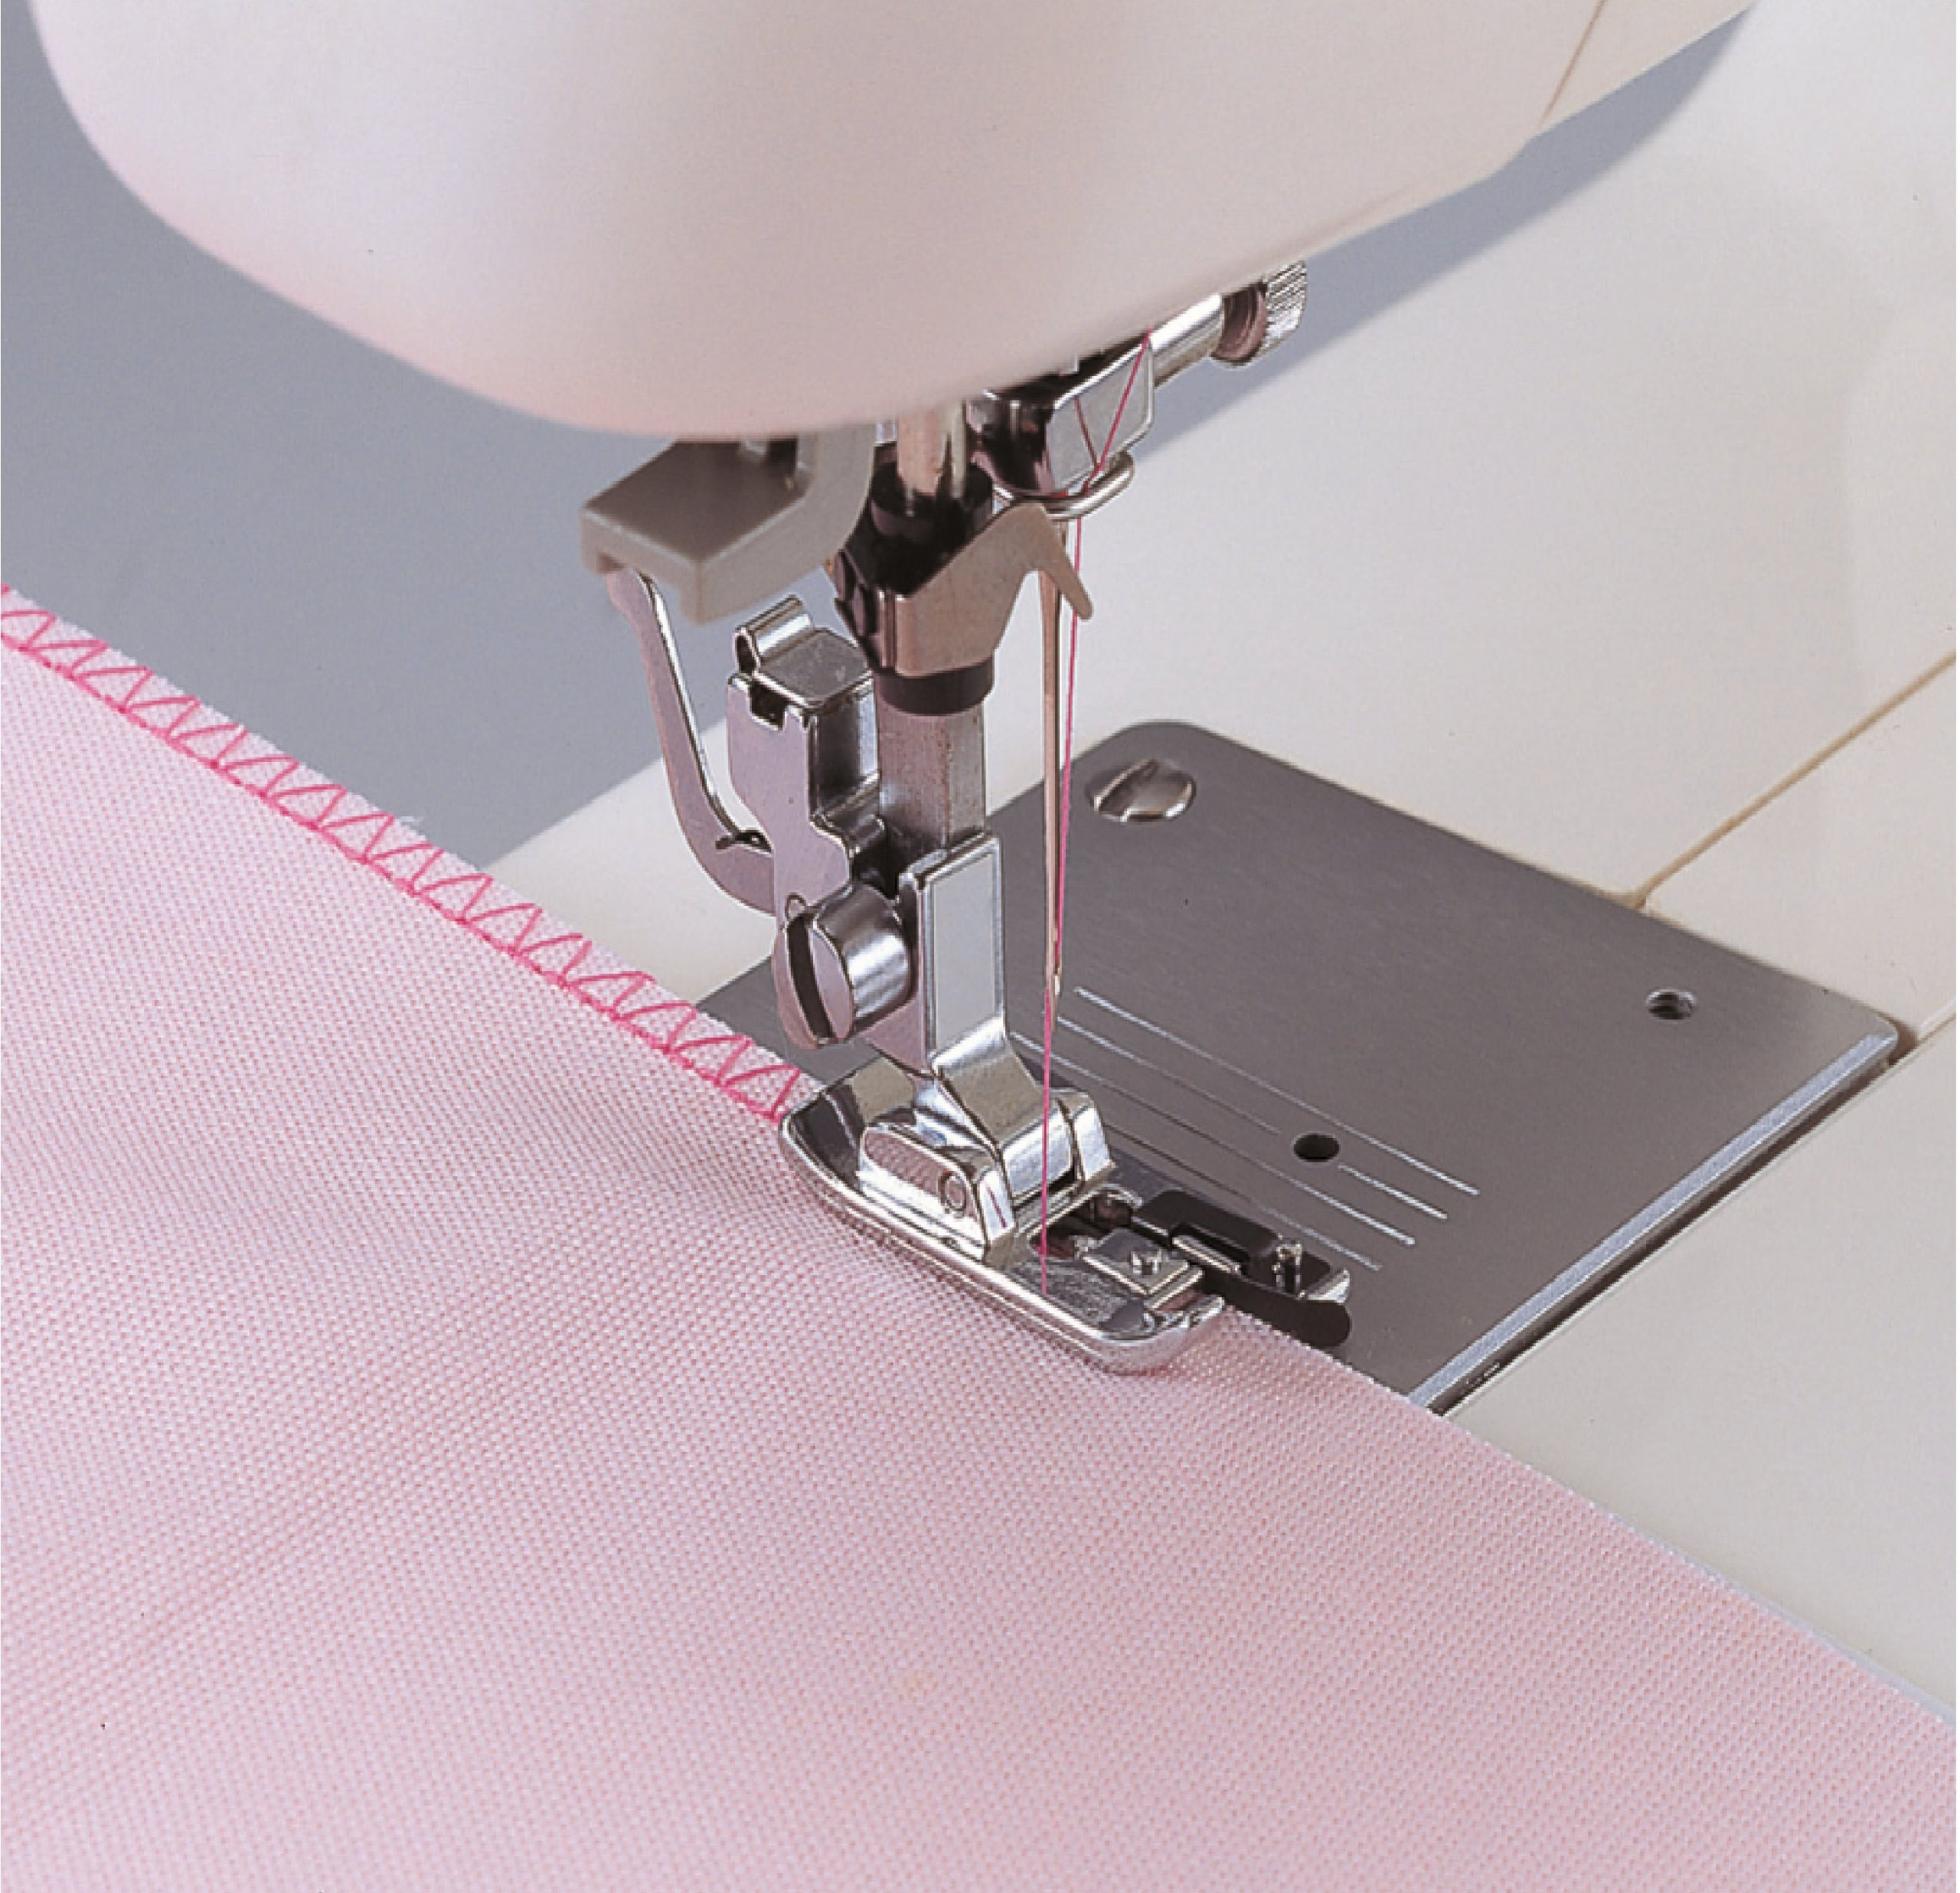 What overlock and carpetlock should choose for home and studio